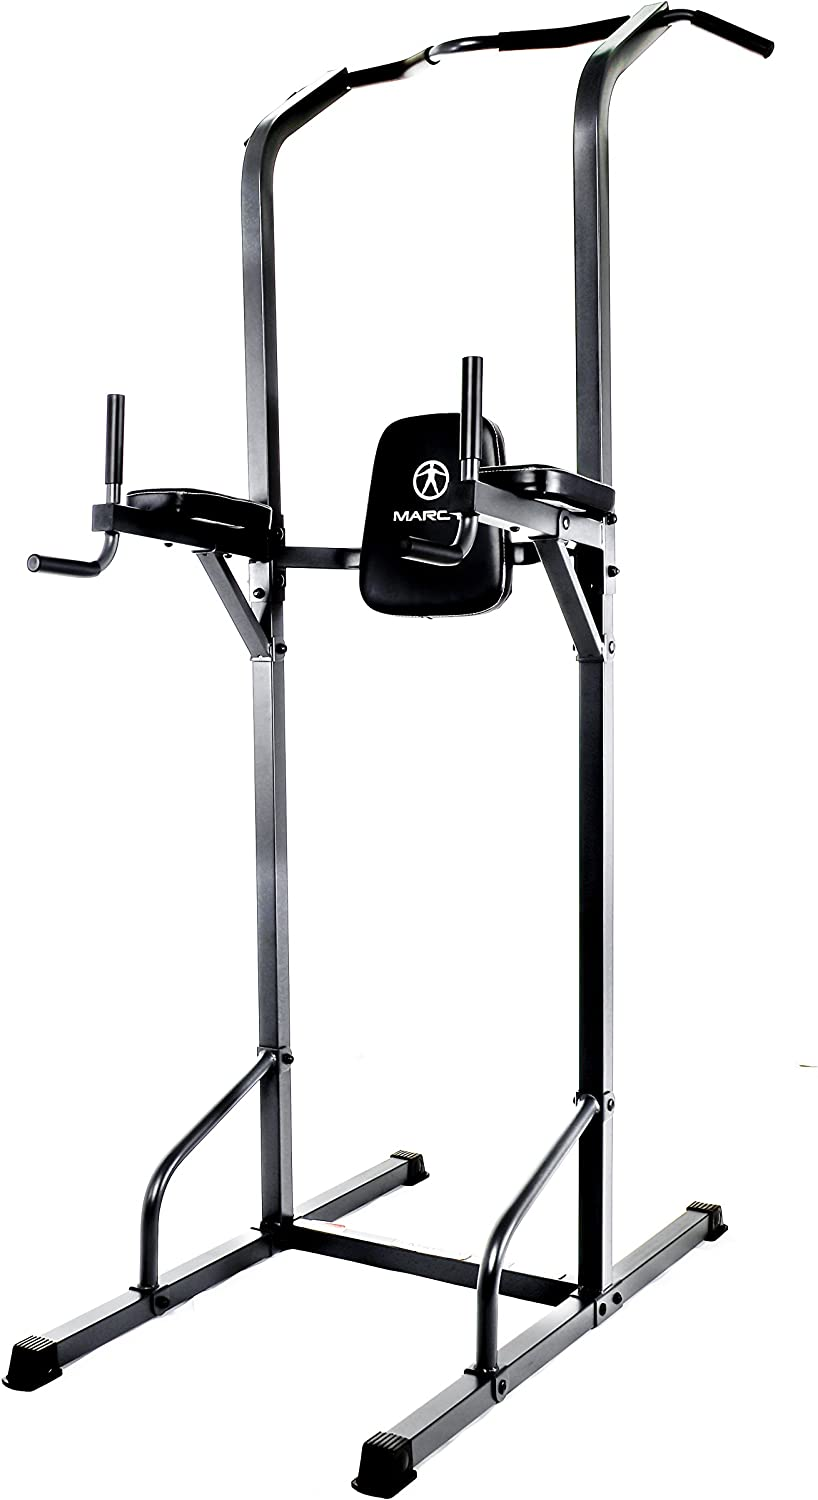 Marcy Power Tower Multi-Grip Pull Up /& Dip Station VKR Home Gym TC-3515